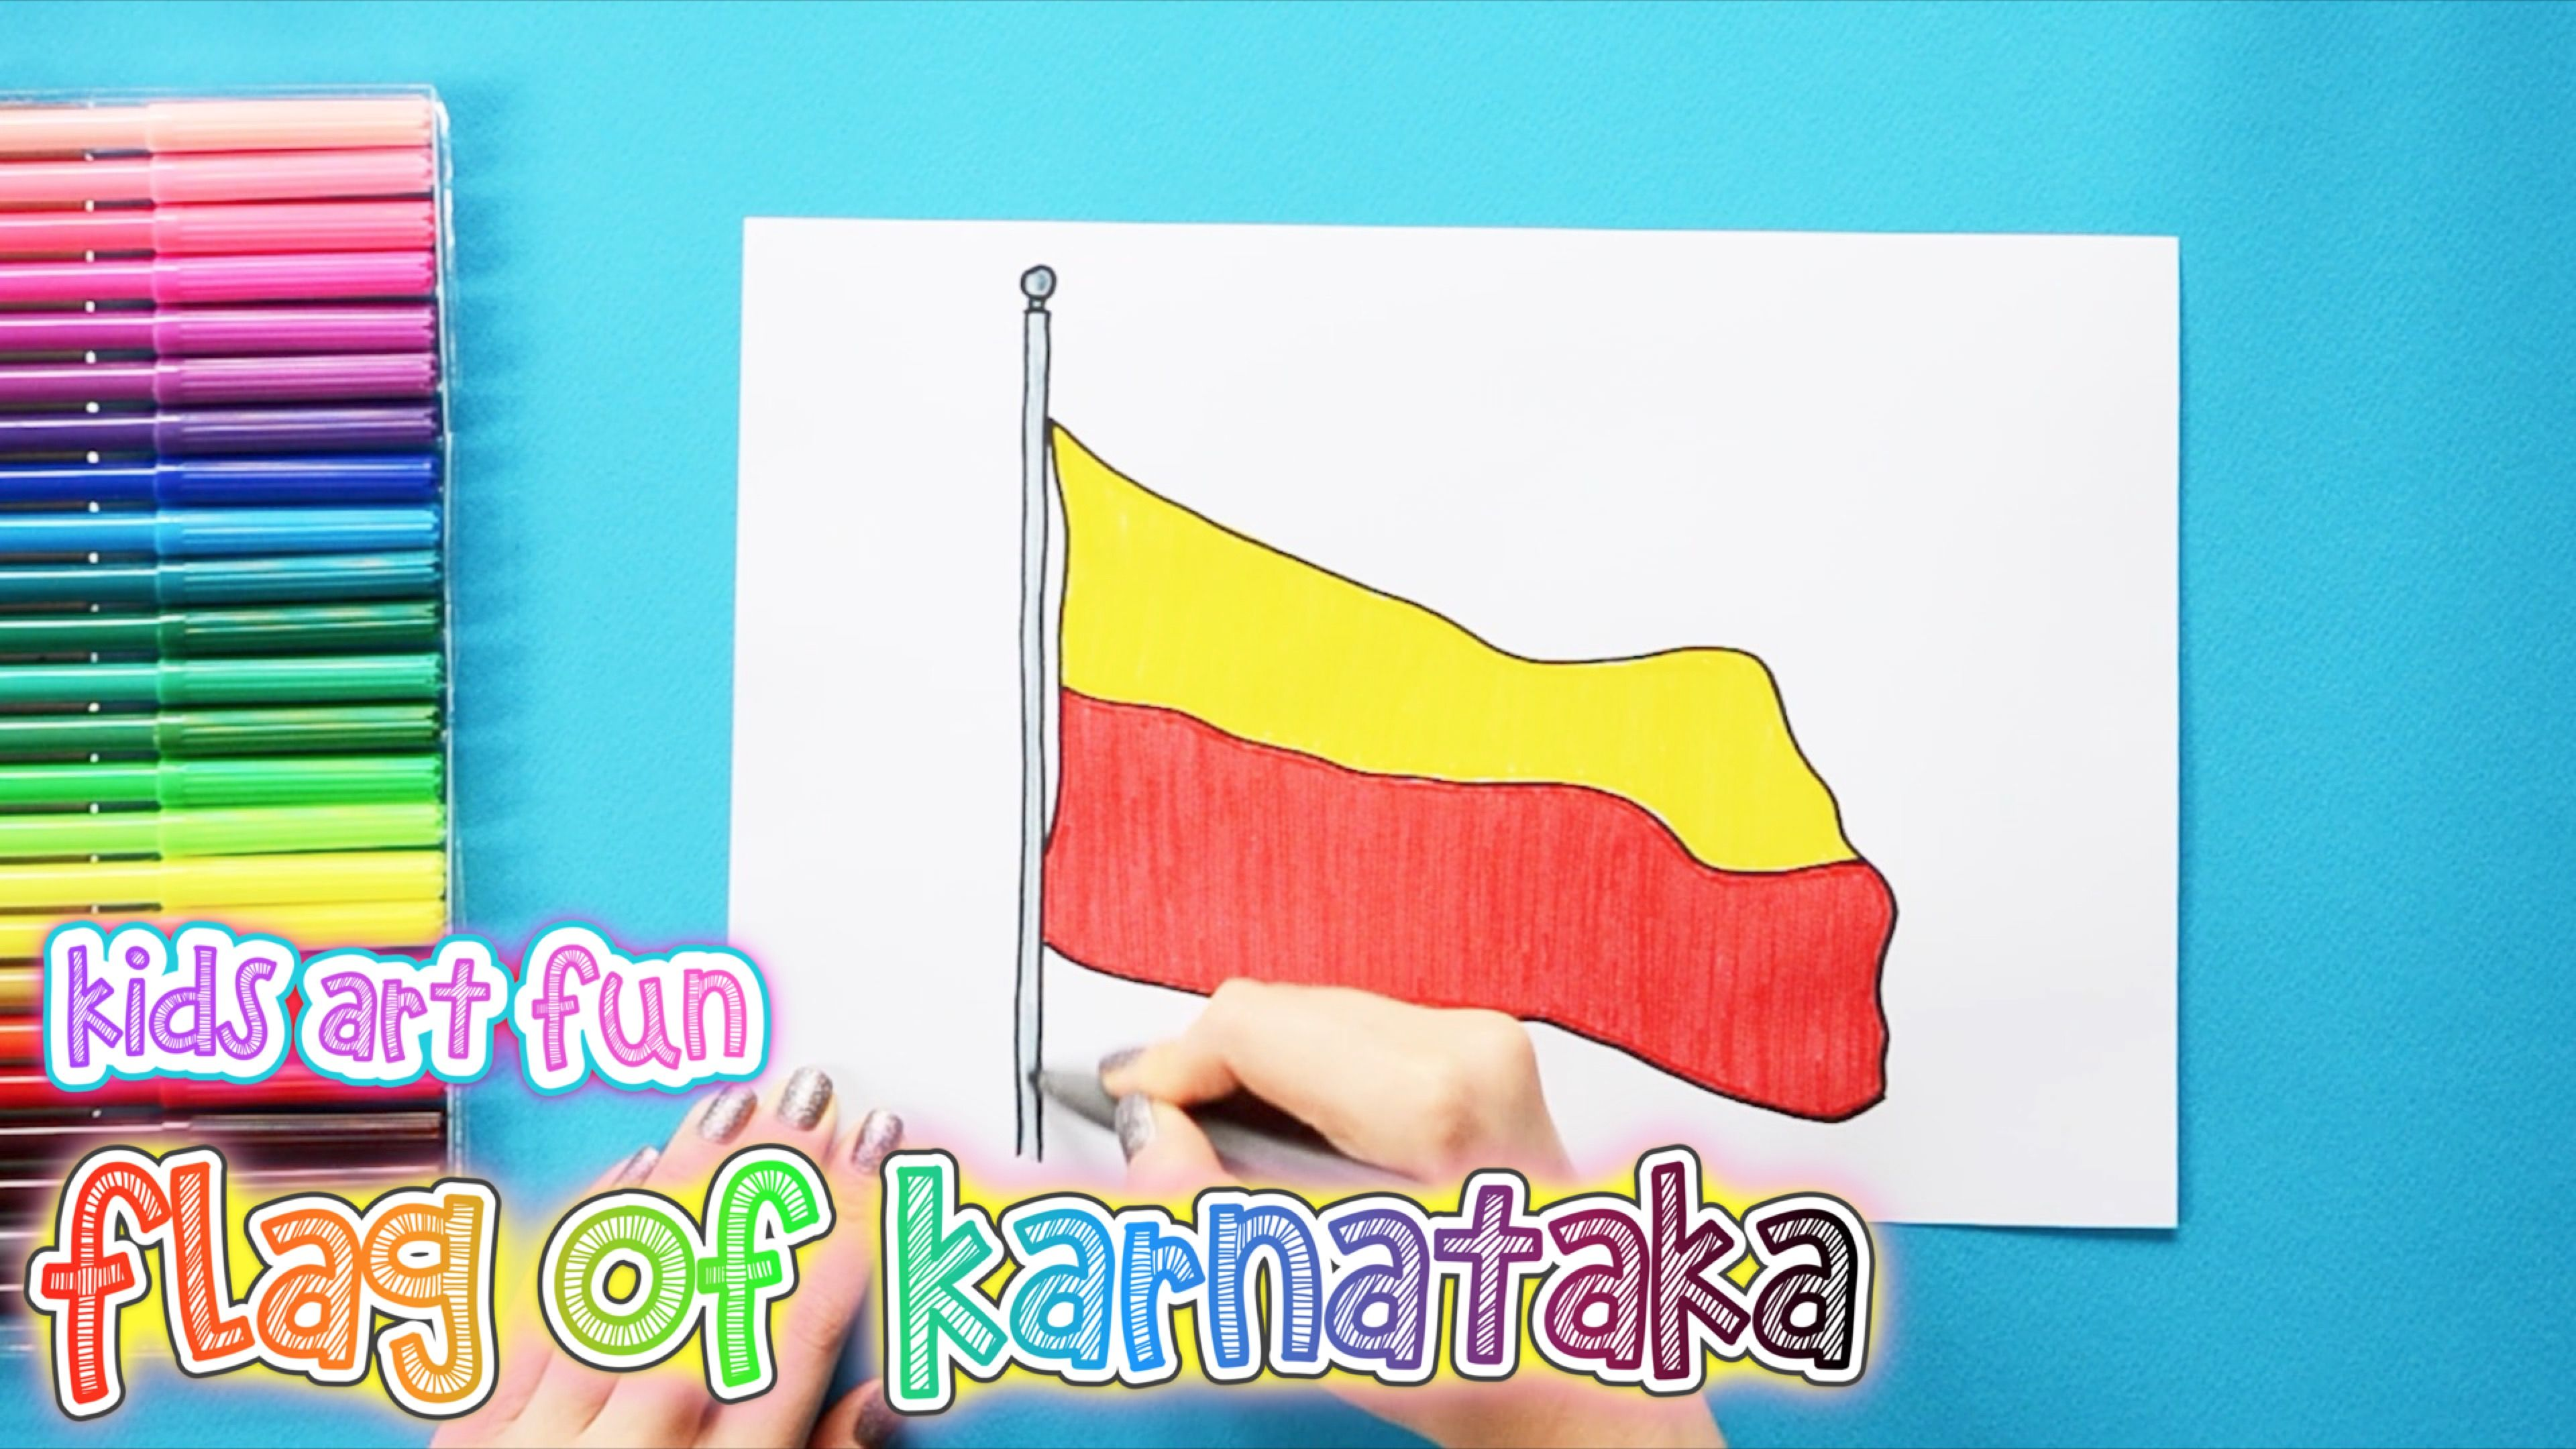 How To Draw And Color The Flag Of Karnataka Flag Drawing Flag Art For Kids